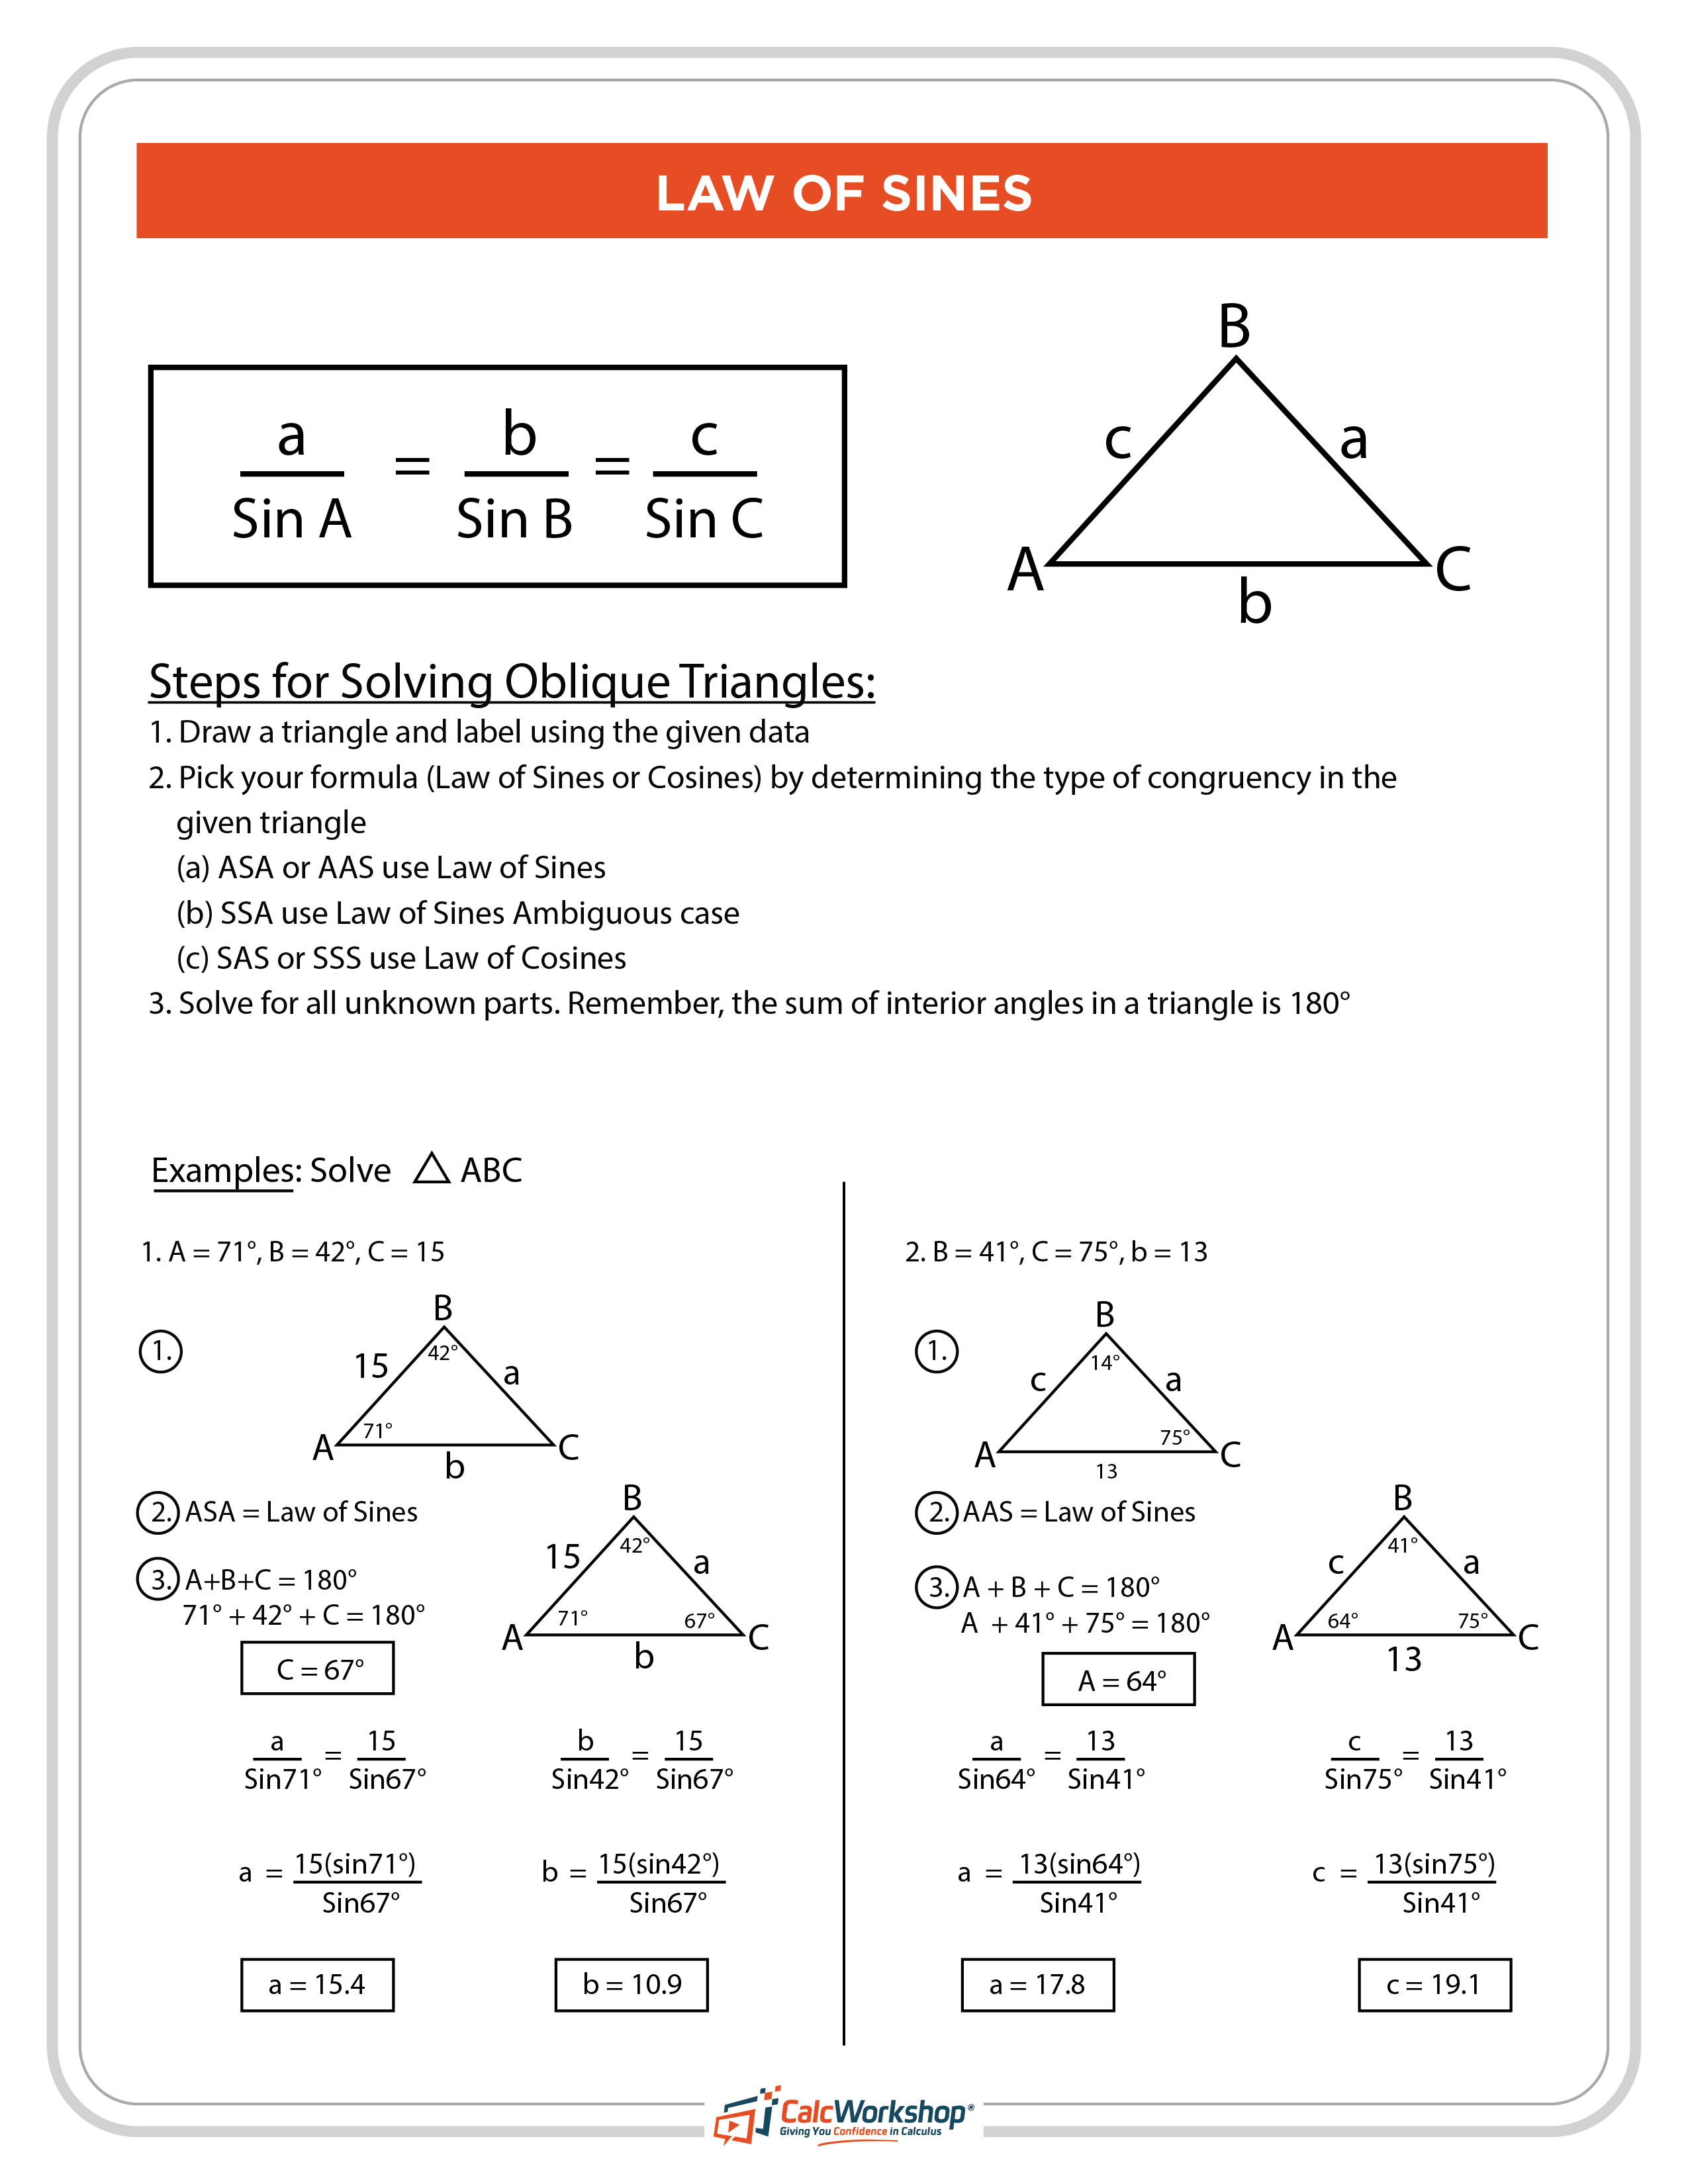 worksheet Law Of Sines Worksheet Pdf what is the law of sines simply explained with 4 classic examples pdf free printable which includes formulas detailed steps to